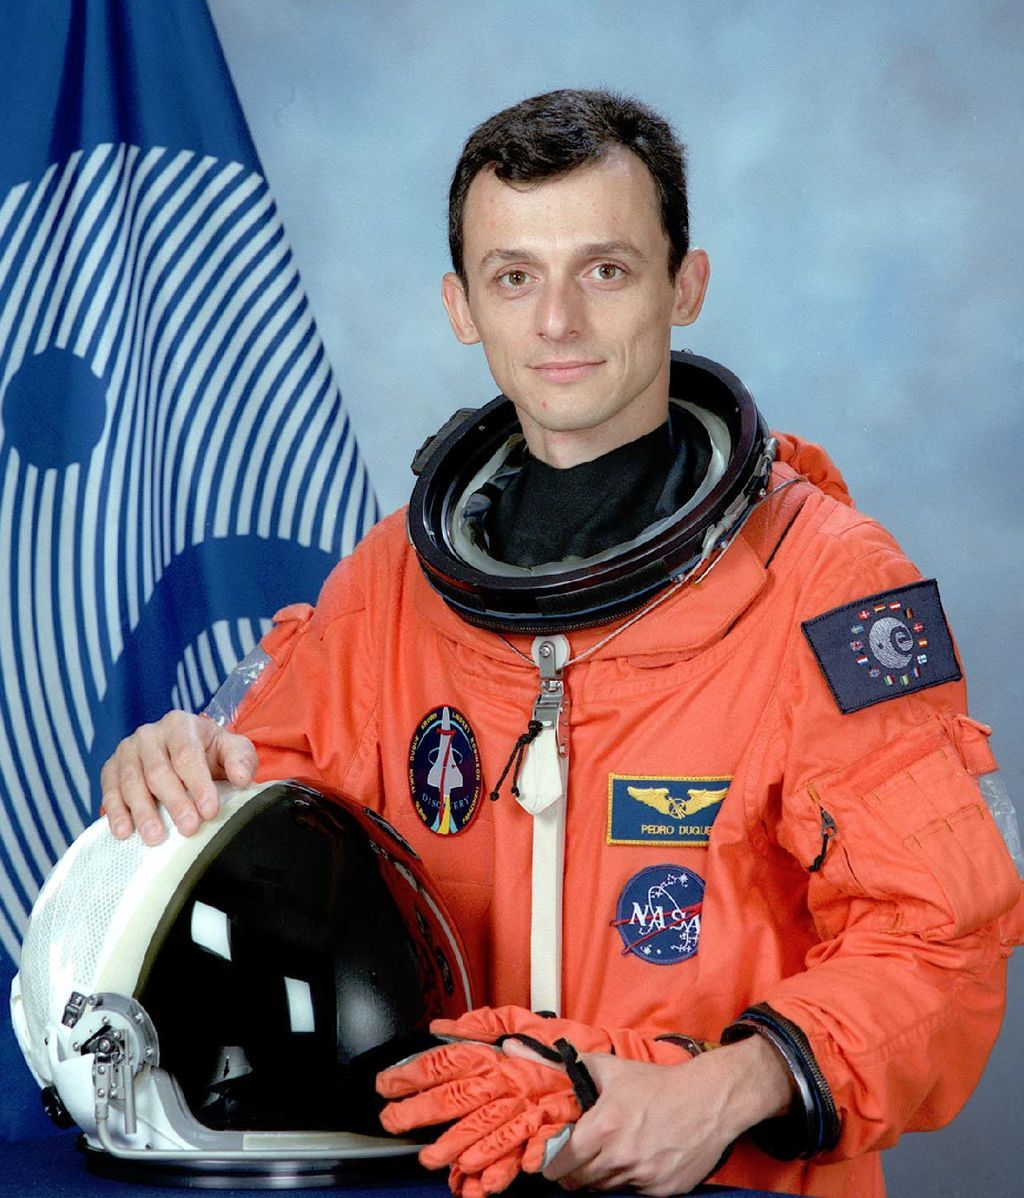 Pedro_Duque_Astronaut_of_the_European_Space_Agency_ESA